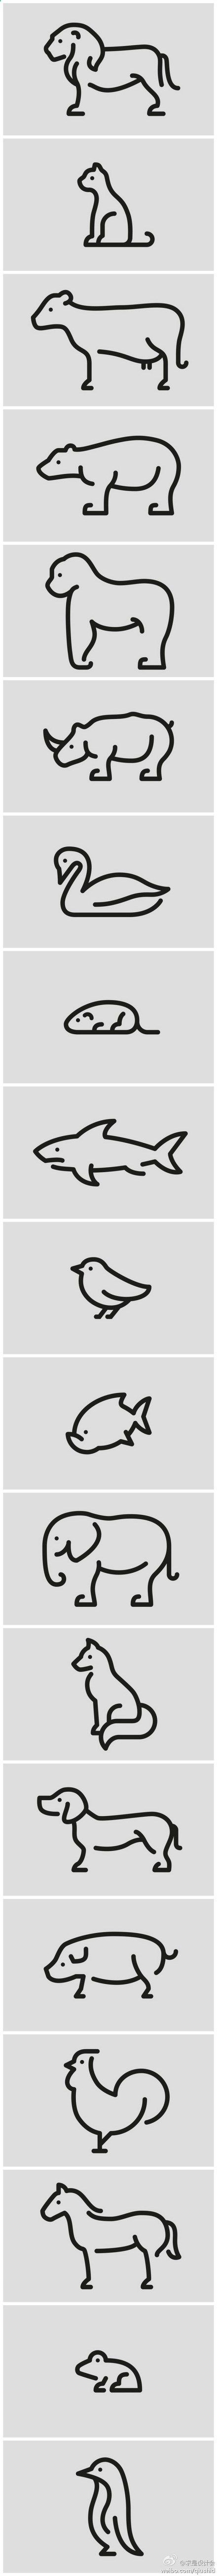 Easy to draw animals. For when kids want me to draw something